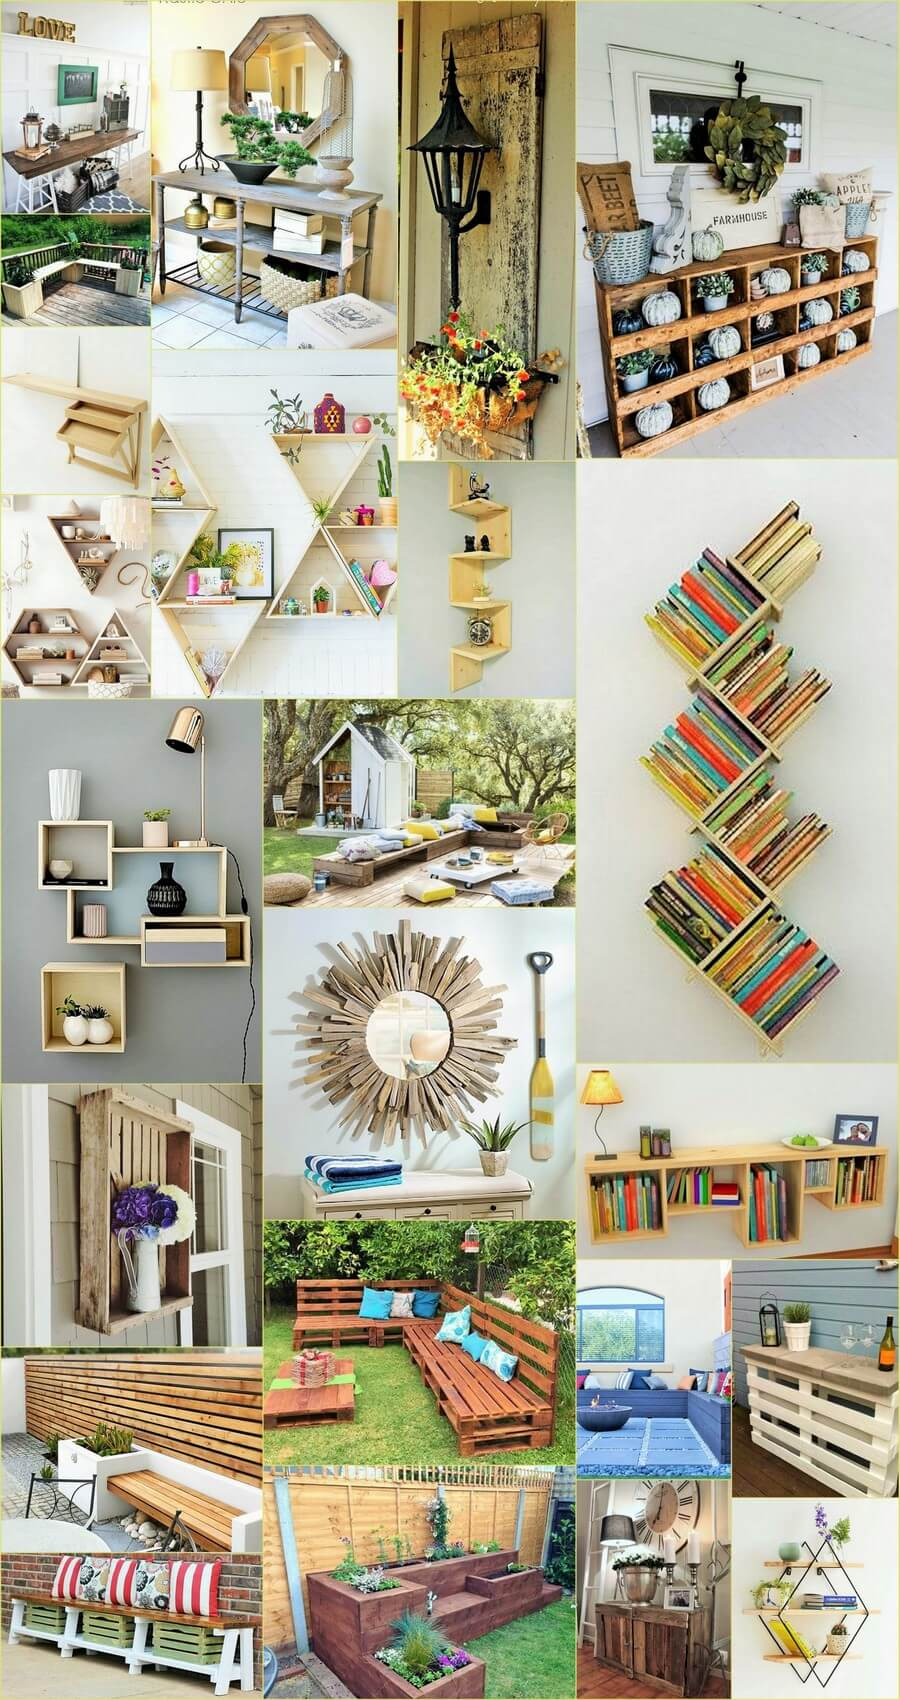 Pallets Ideas With The Wooden Palette You Can Make Boundary Of Mirror And Tables As Well If Want Here See Both In